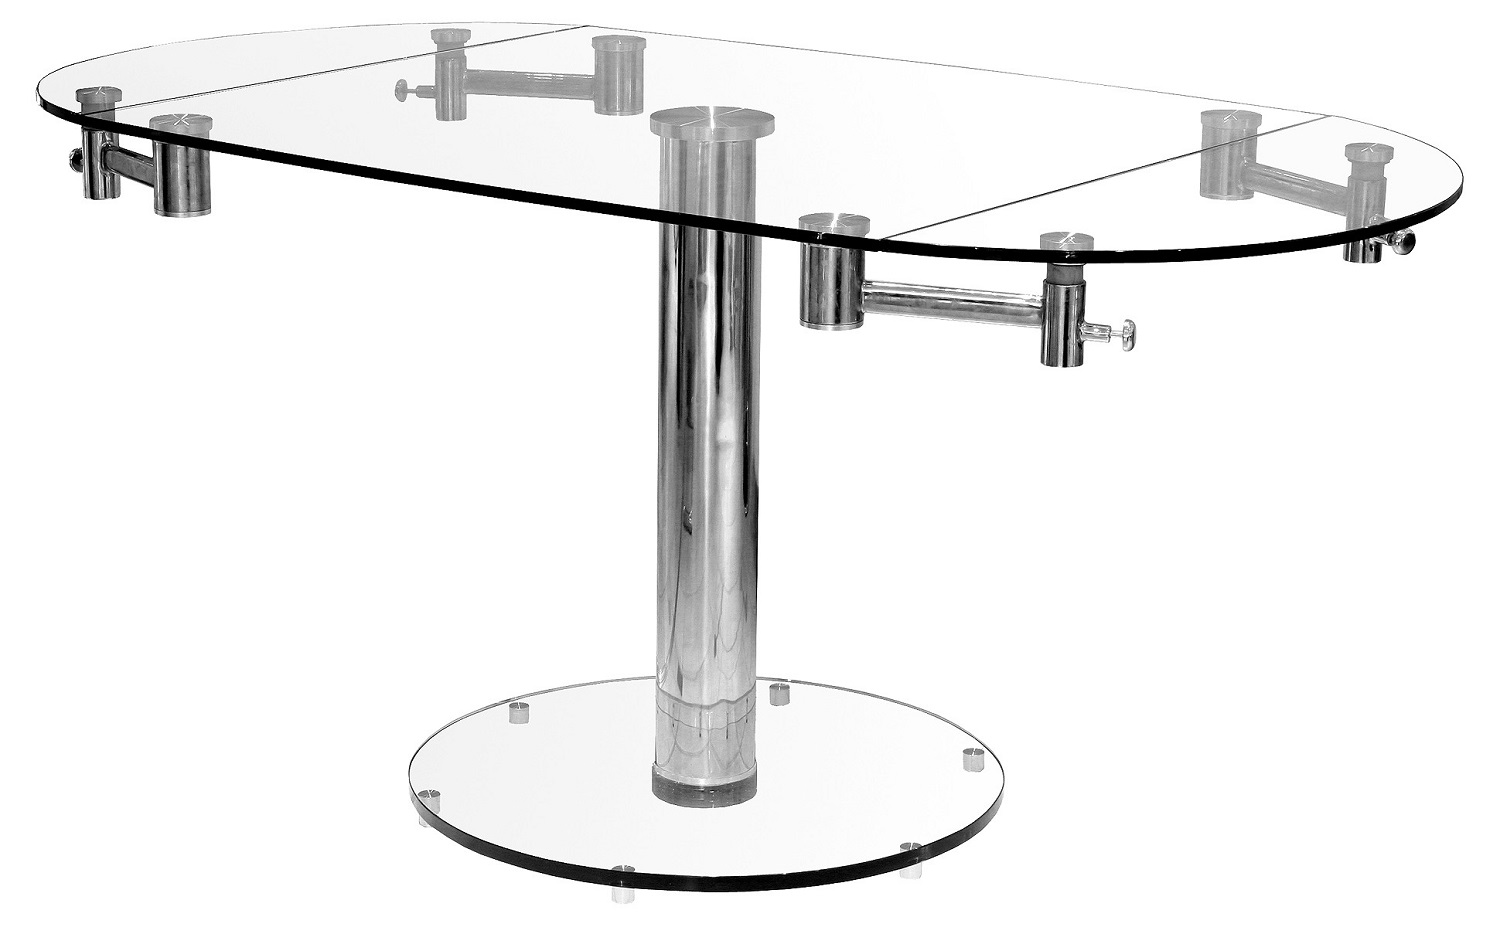 Oval Extending Glass Dining Table Oval Extending Dining  : oval extending glass dining table from www.glassdiningfurniture.co.uk size 600 x 371 jpeg 29kB